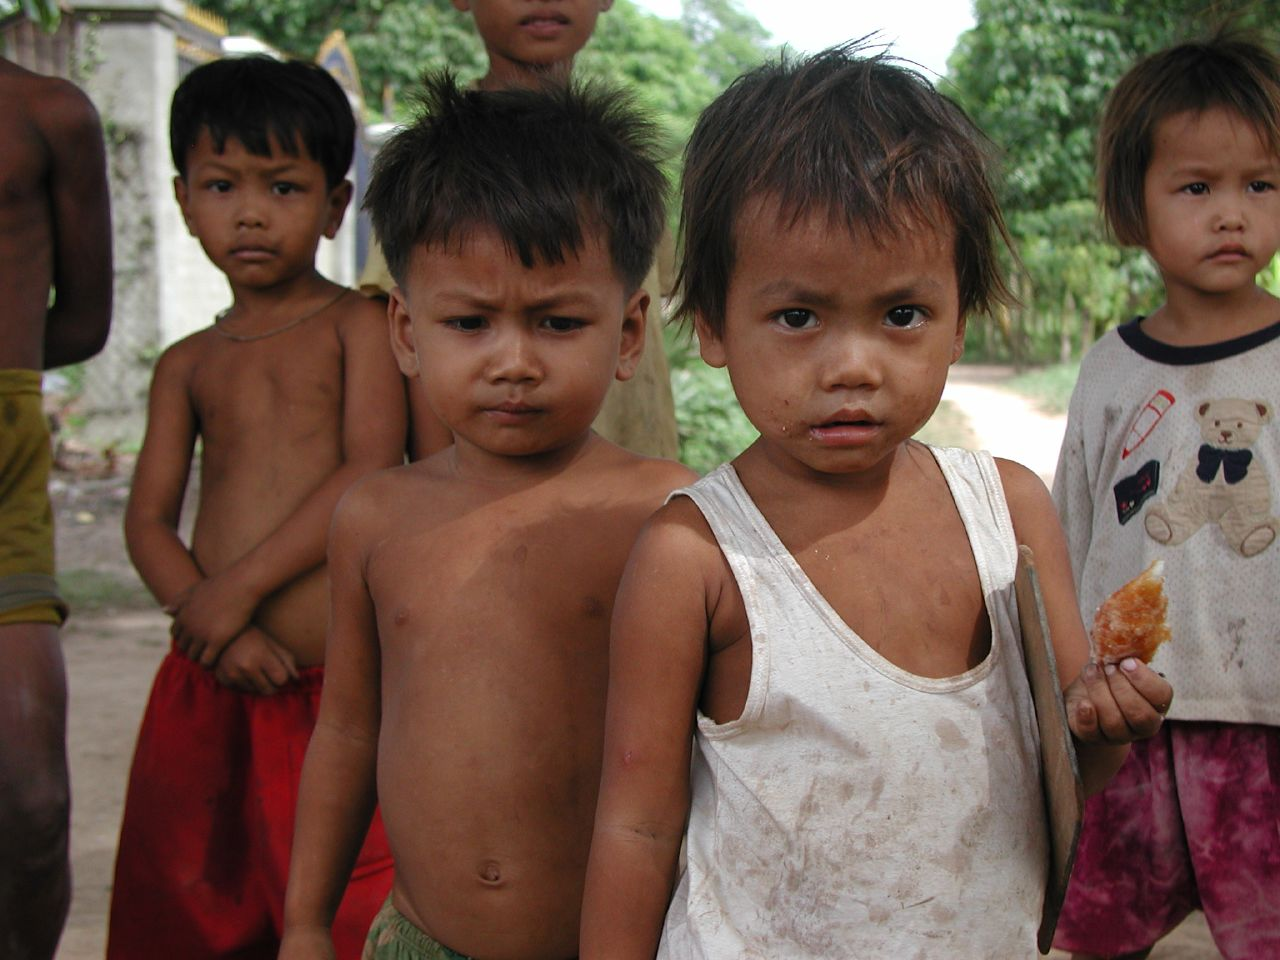 Description Cambodian children.jpg